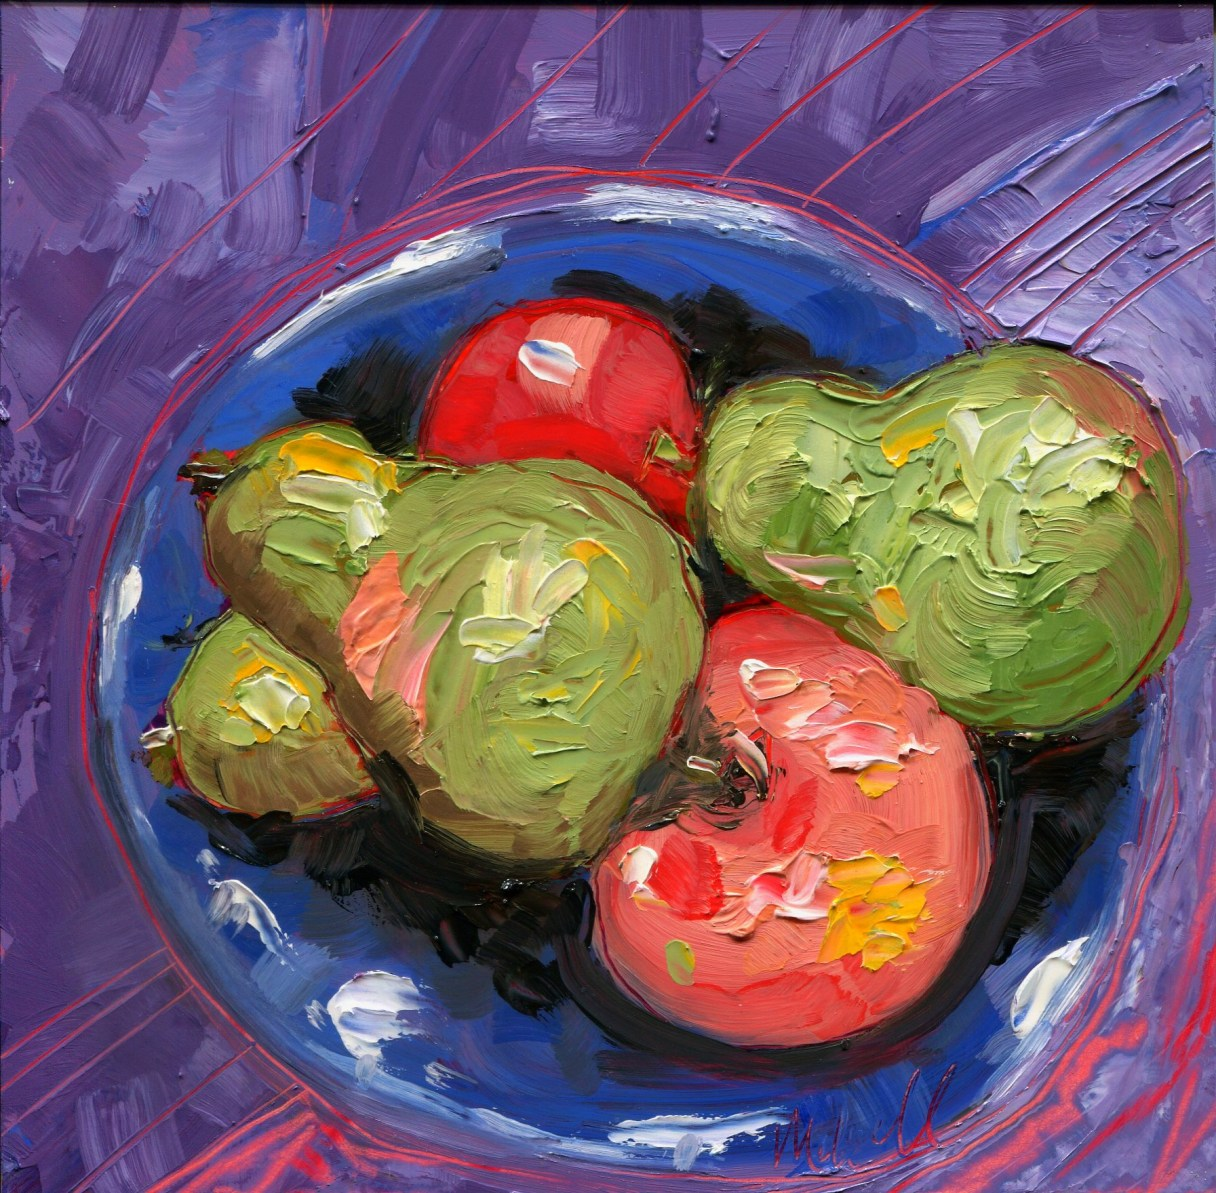 """Melwell Romancito, """"Pears and Apples,"""" oil on claybord, 6x6"""